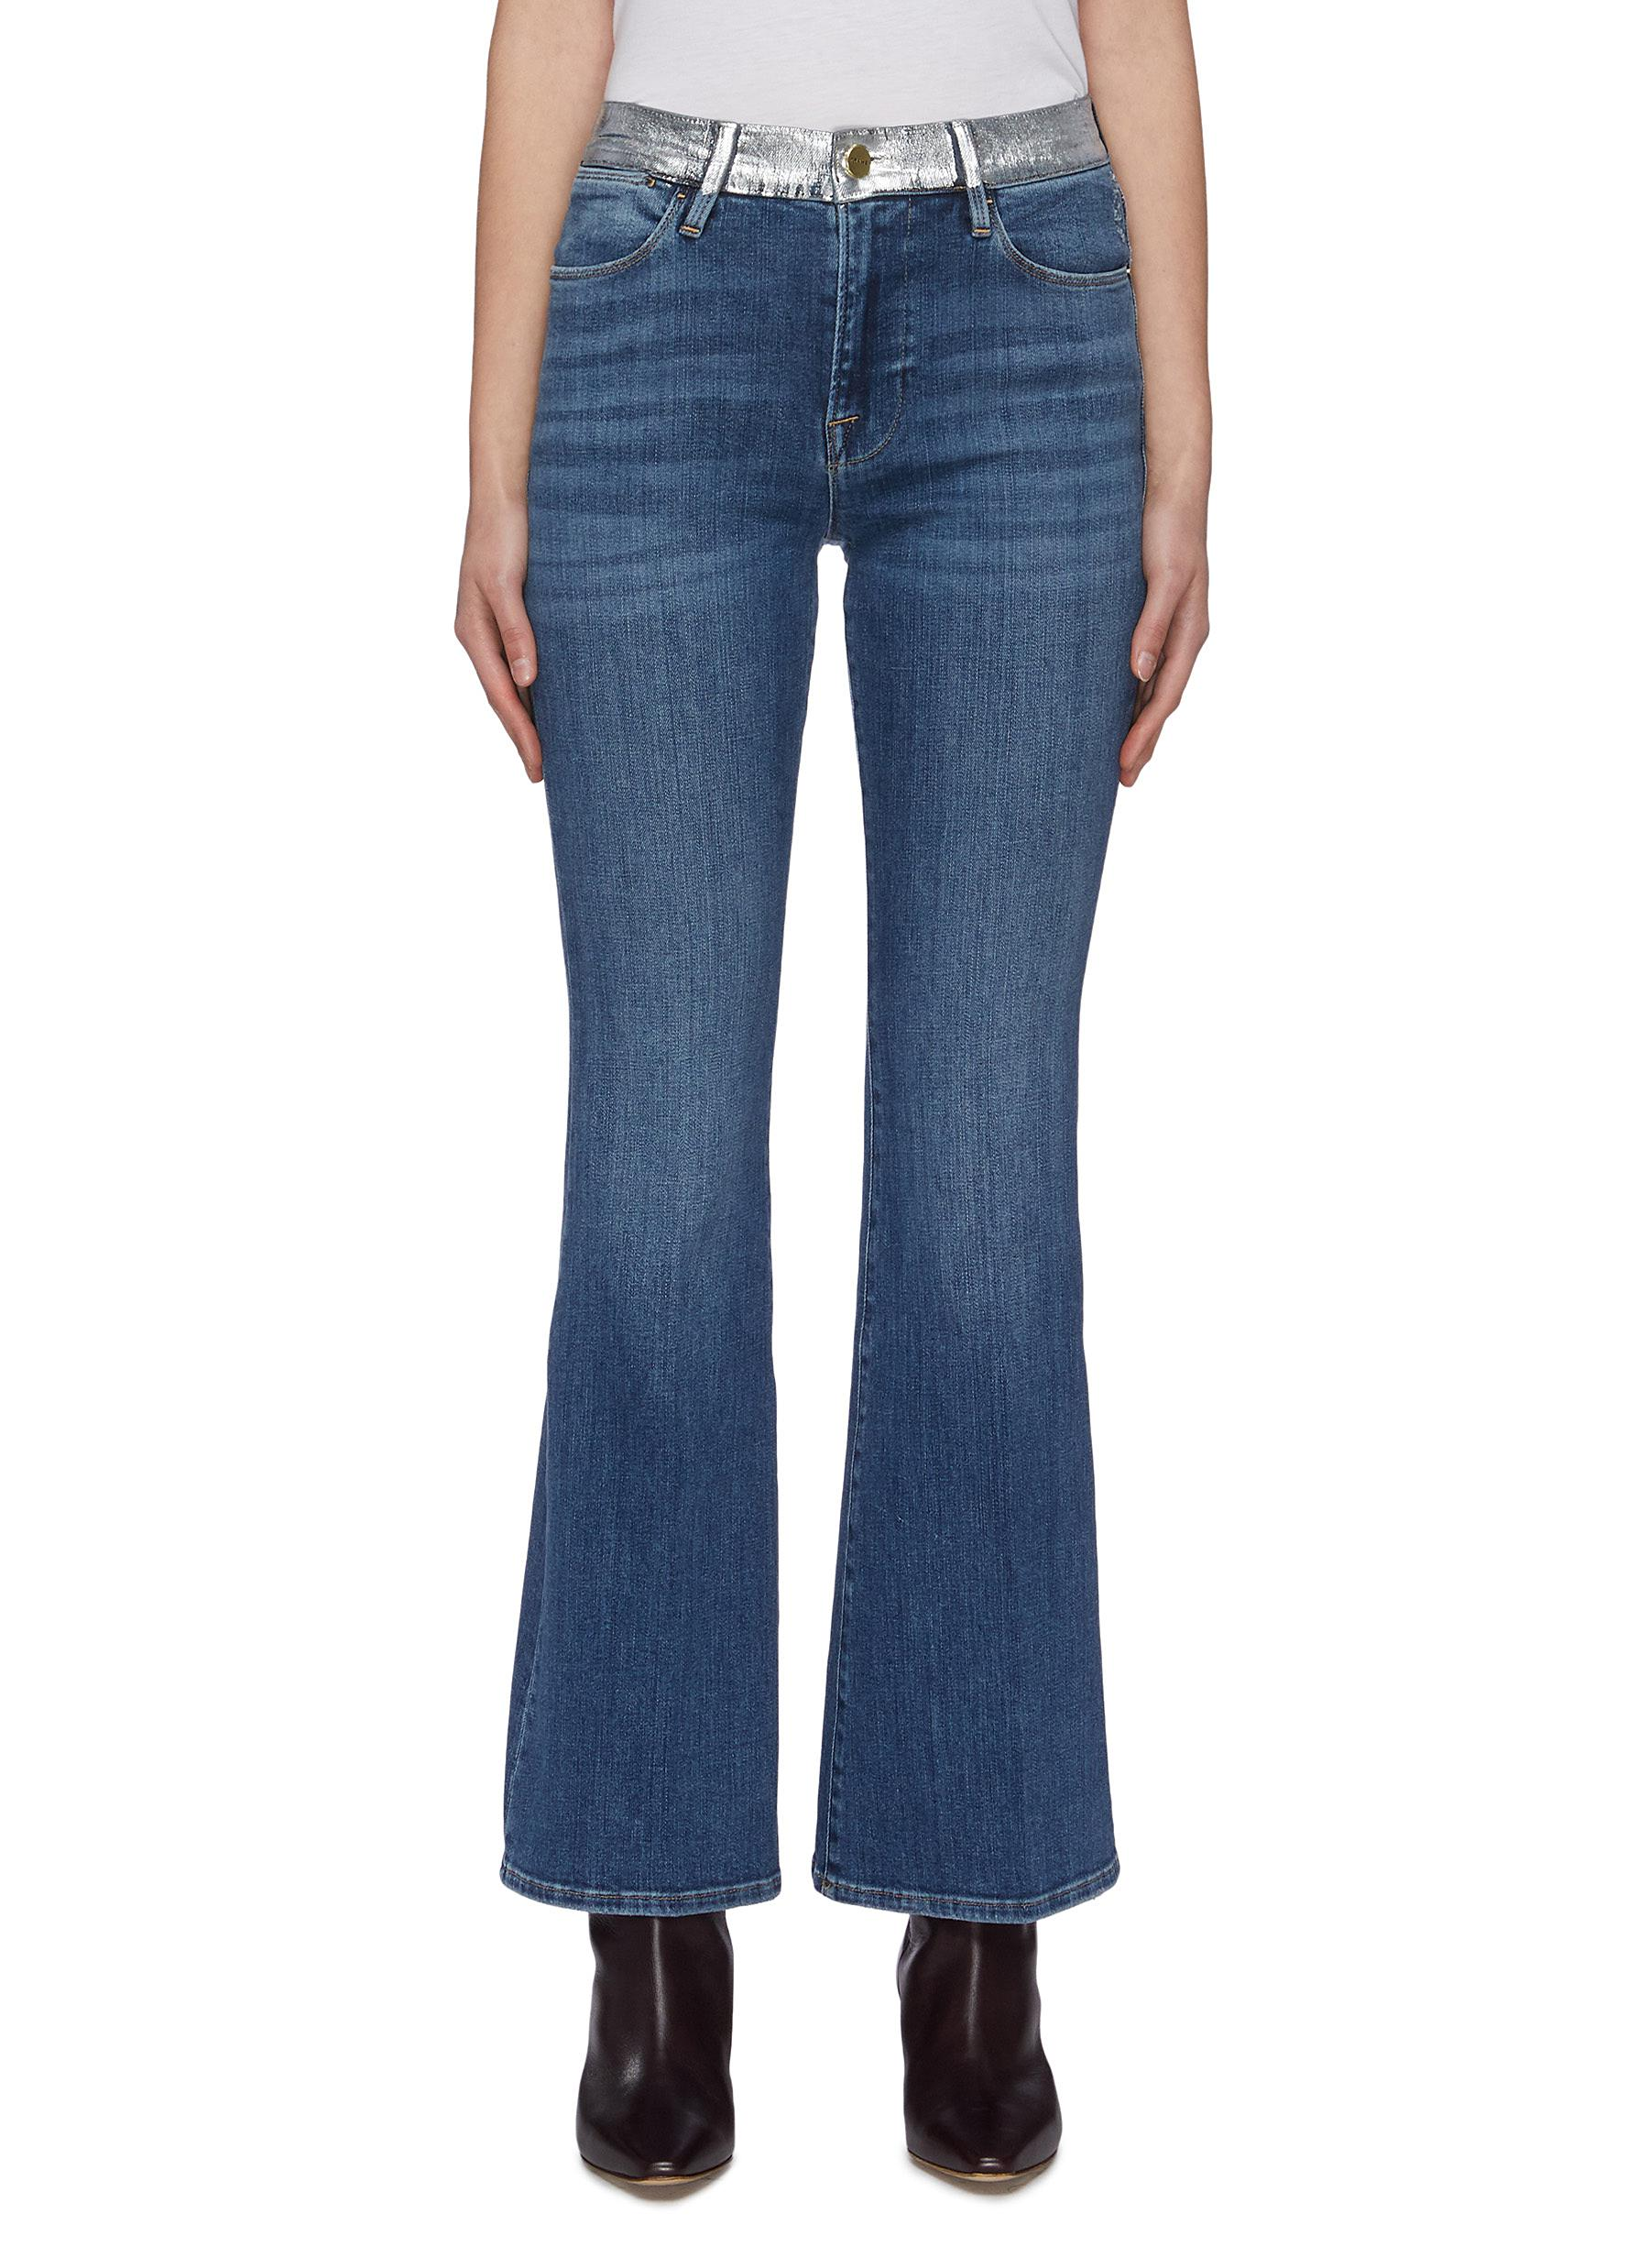 Buy Frame Denim Jeans 'Le Pixie High Flare' panel waistband jeans